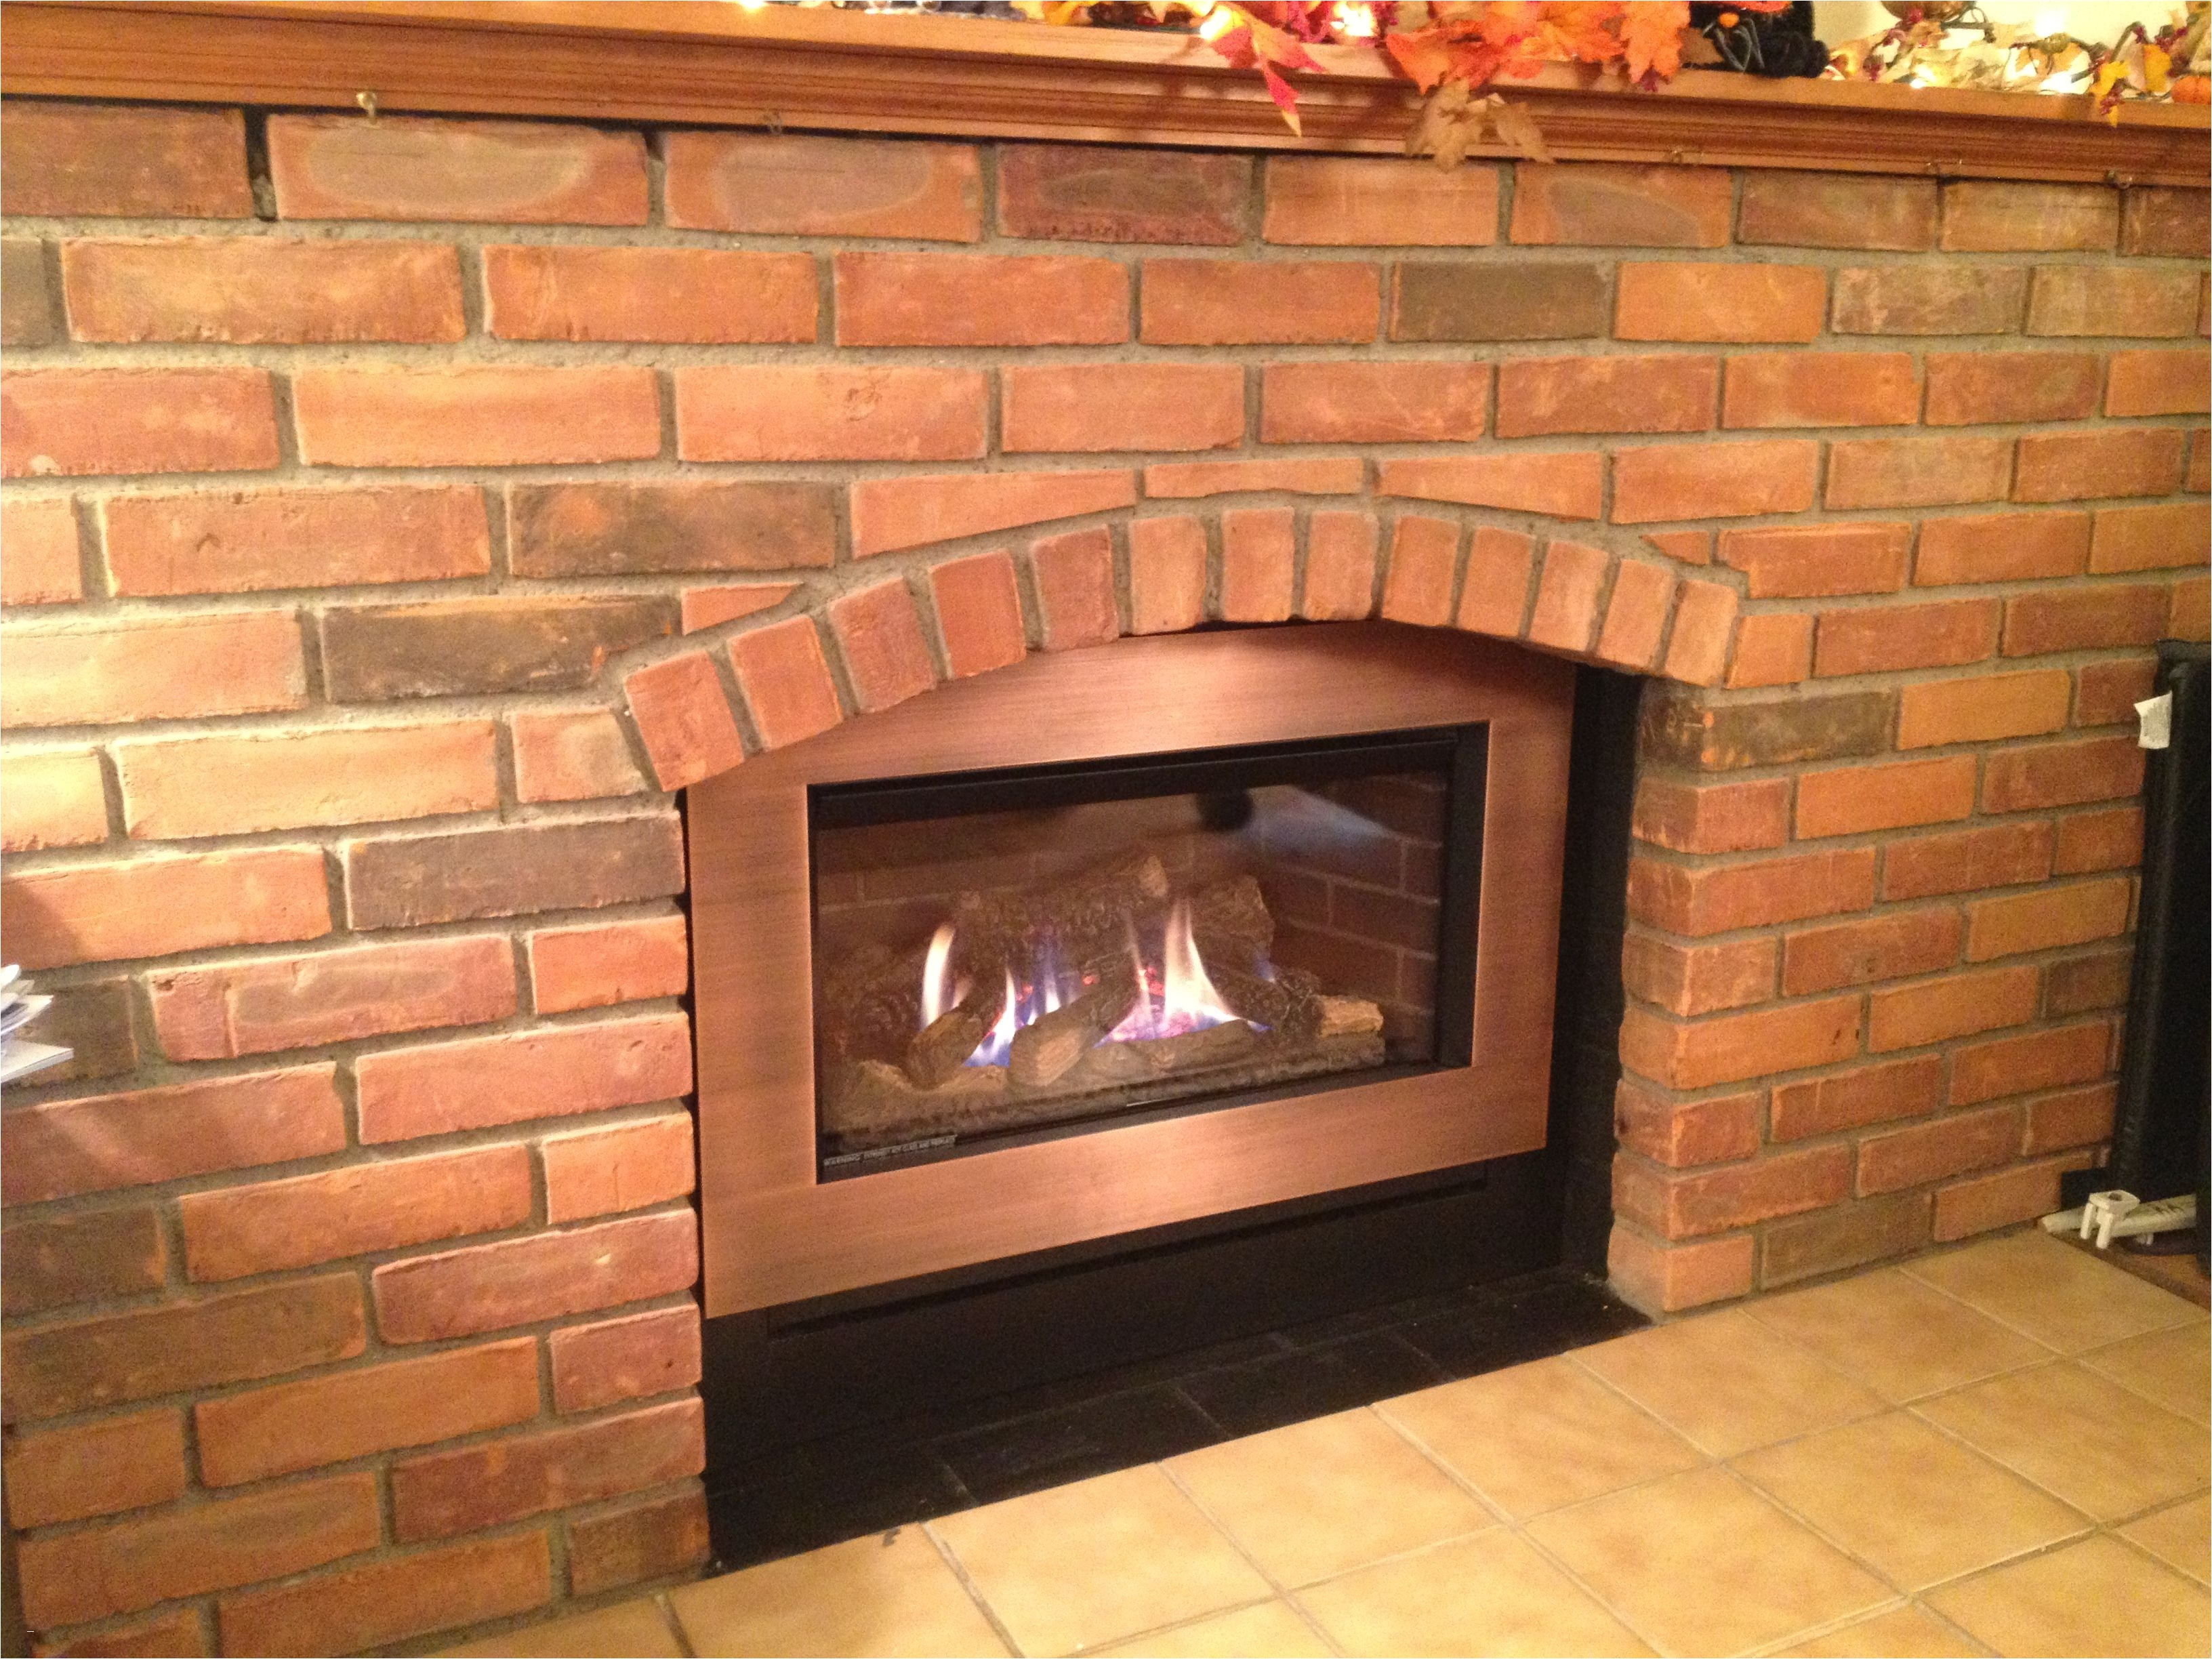 Valor Fireplace Inserts Pricing Outdoor Gas Fireplace Inserts Beautiful Valor G3 785jln Gas Insert